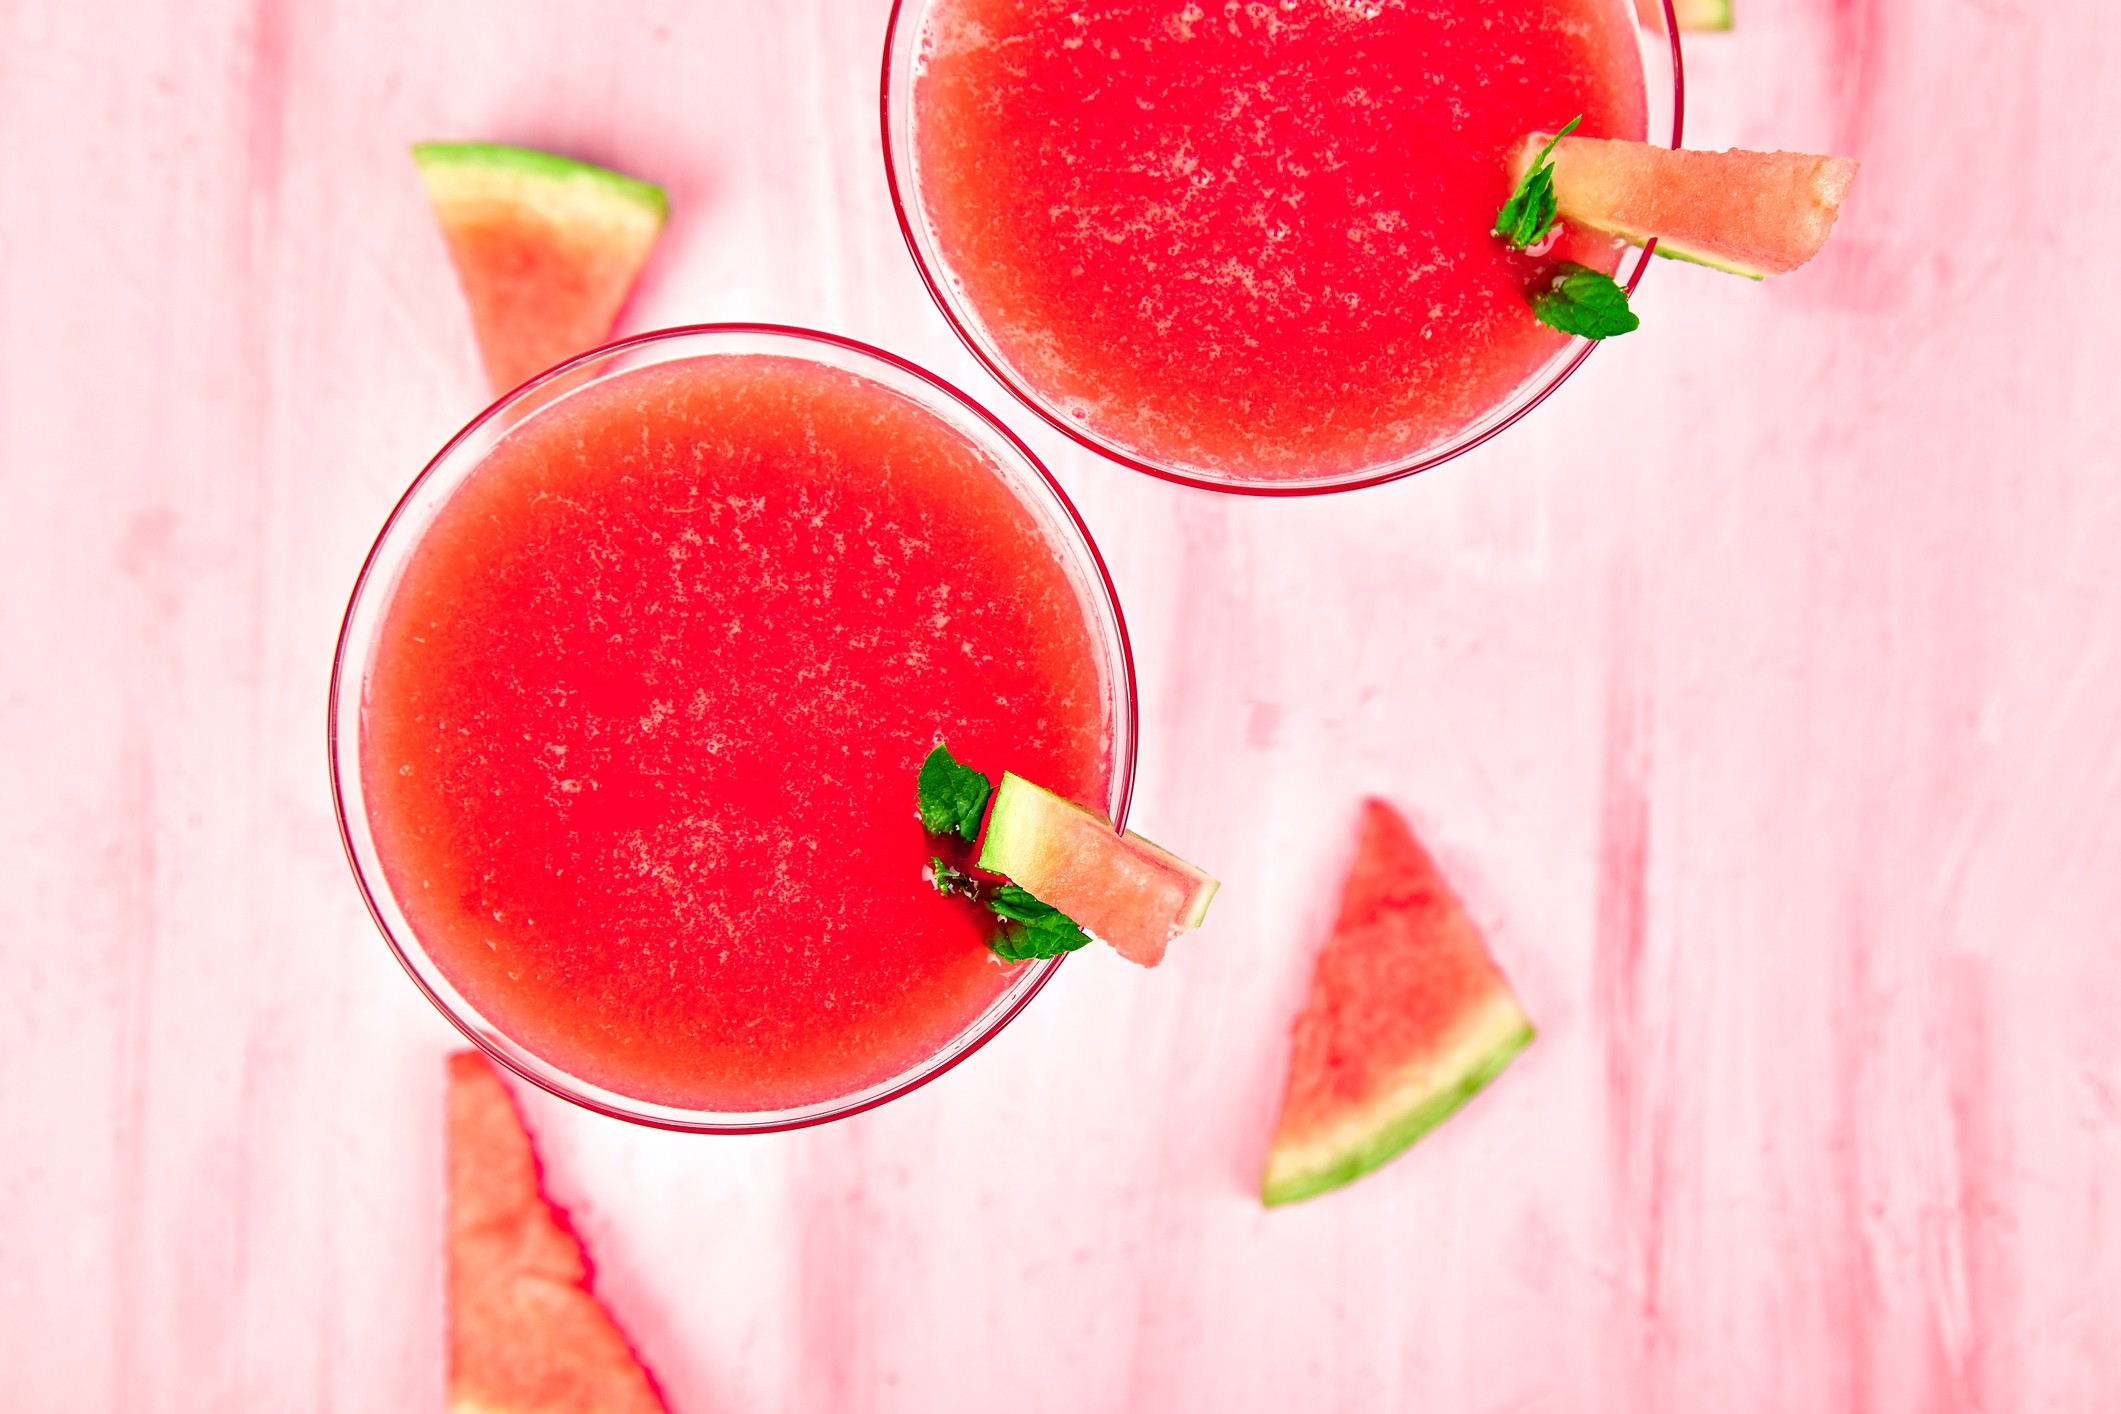 Watermelon margarita cocktail on pink background. Fresh watermelon lemonade with mint and  ice for summer party. Refreshing summer drink. Top view. (Foto: Getty Images/iStockphoto)